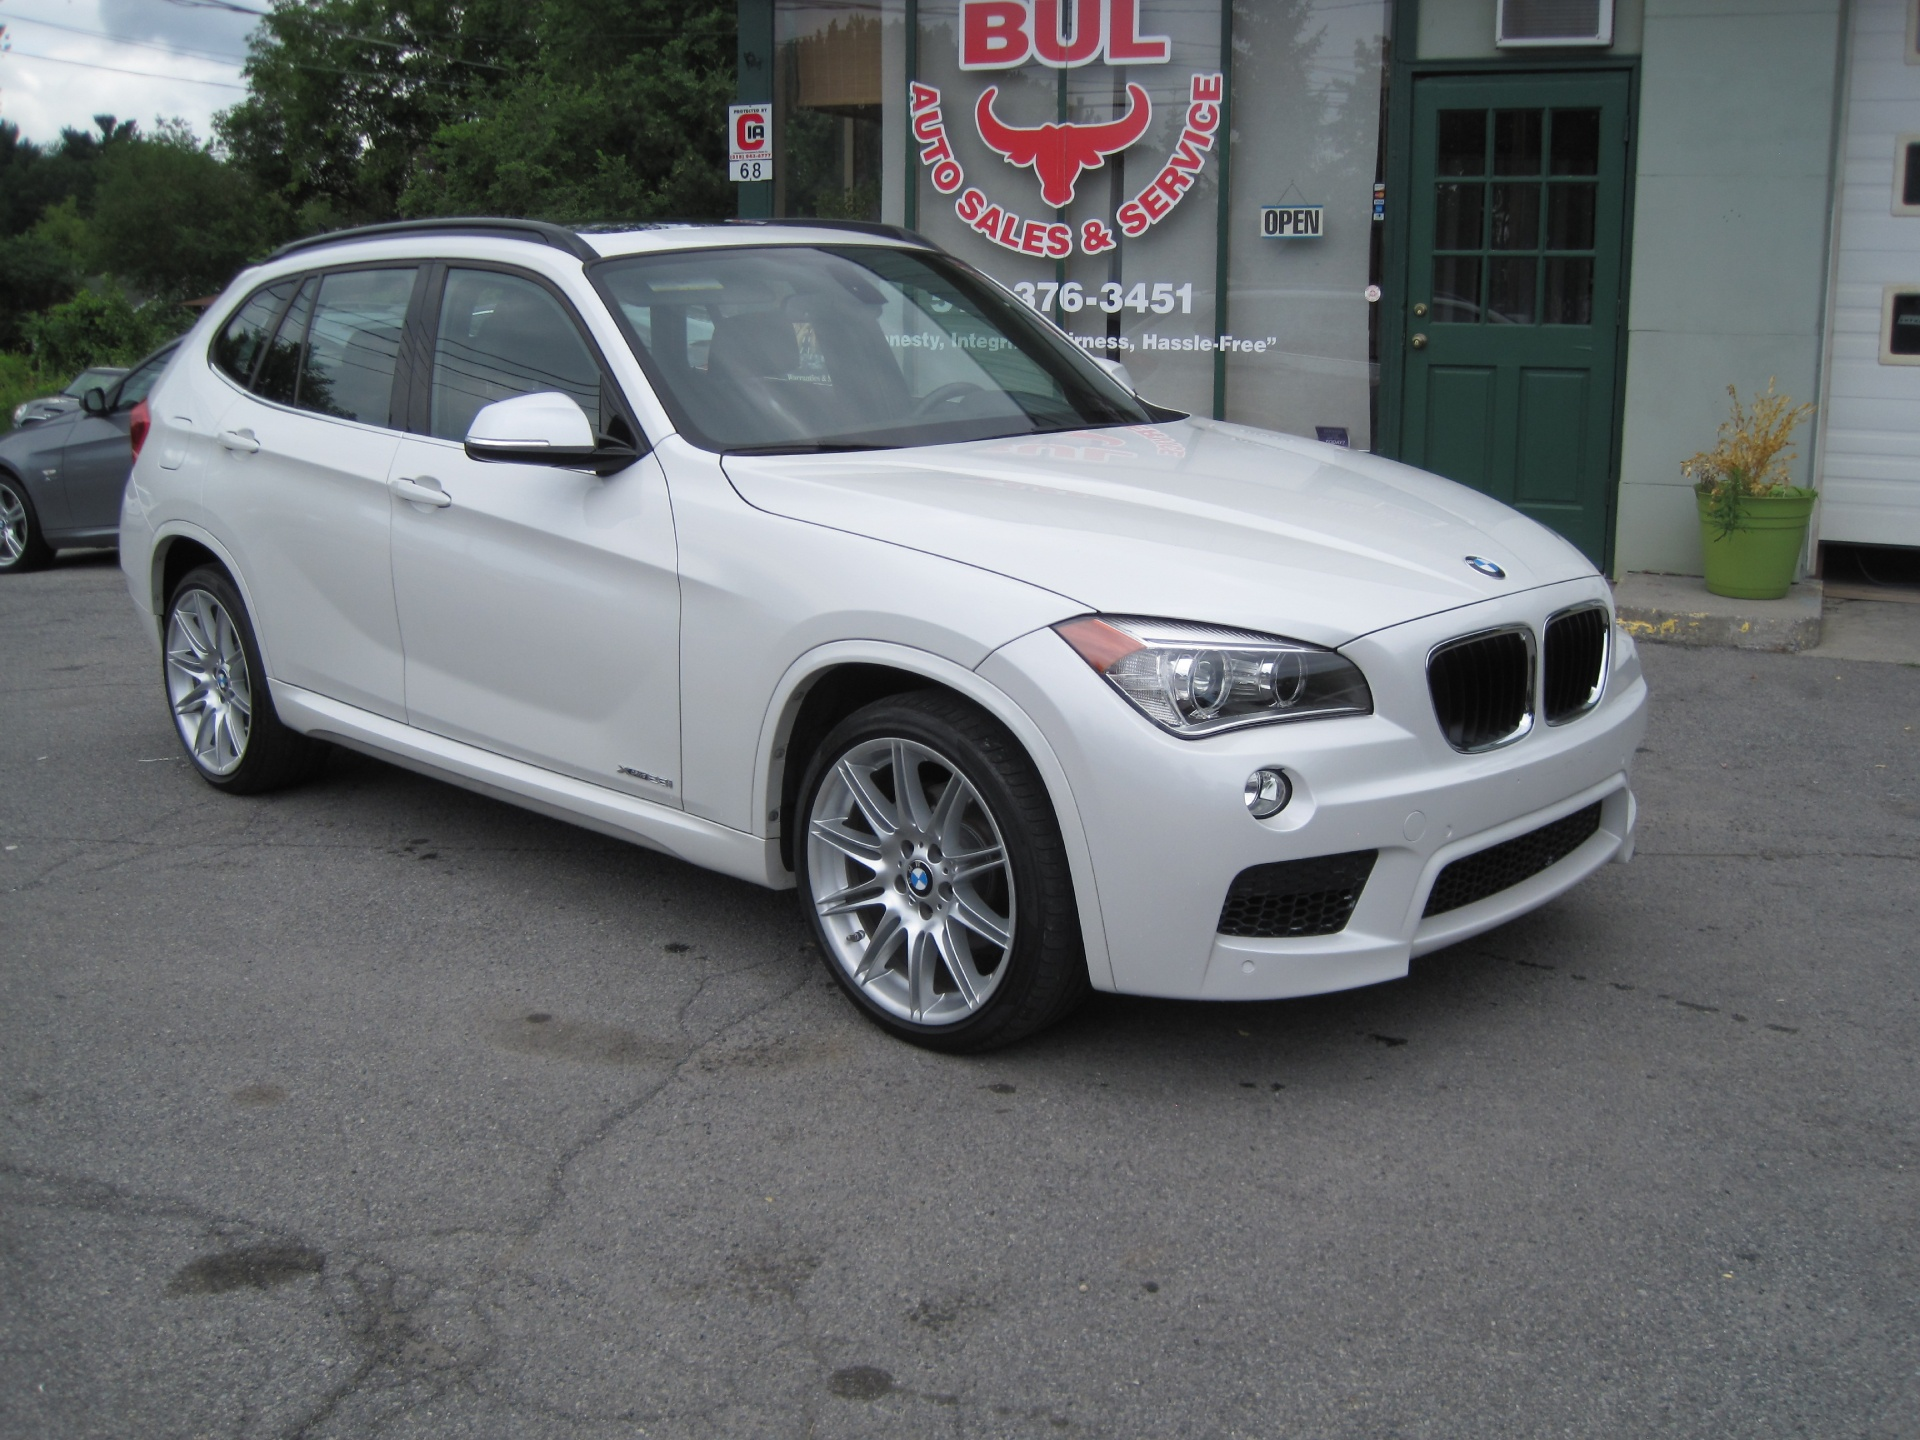 2013 bmw x1 xdrive28i awd super loaded m sport premium ultimate drivers assistance stock 15094. Black Bedroom Furniture Sets. Home Design Ideas